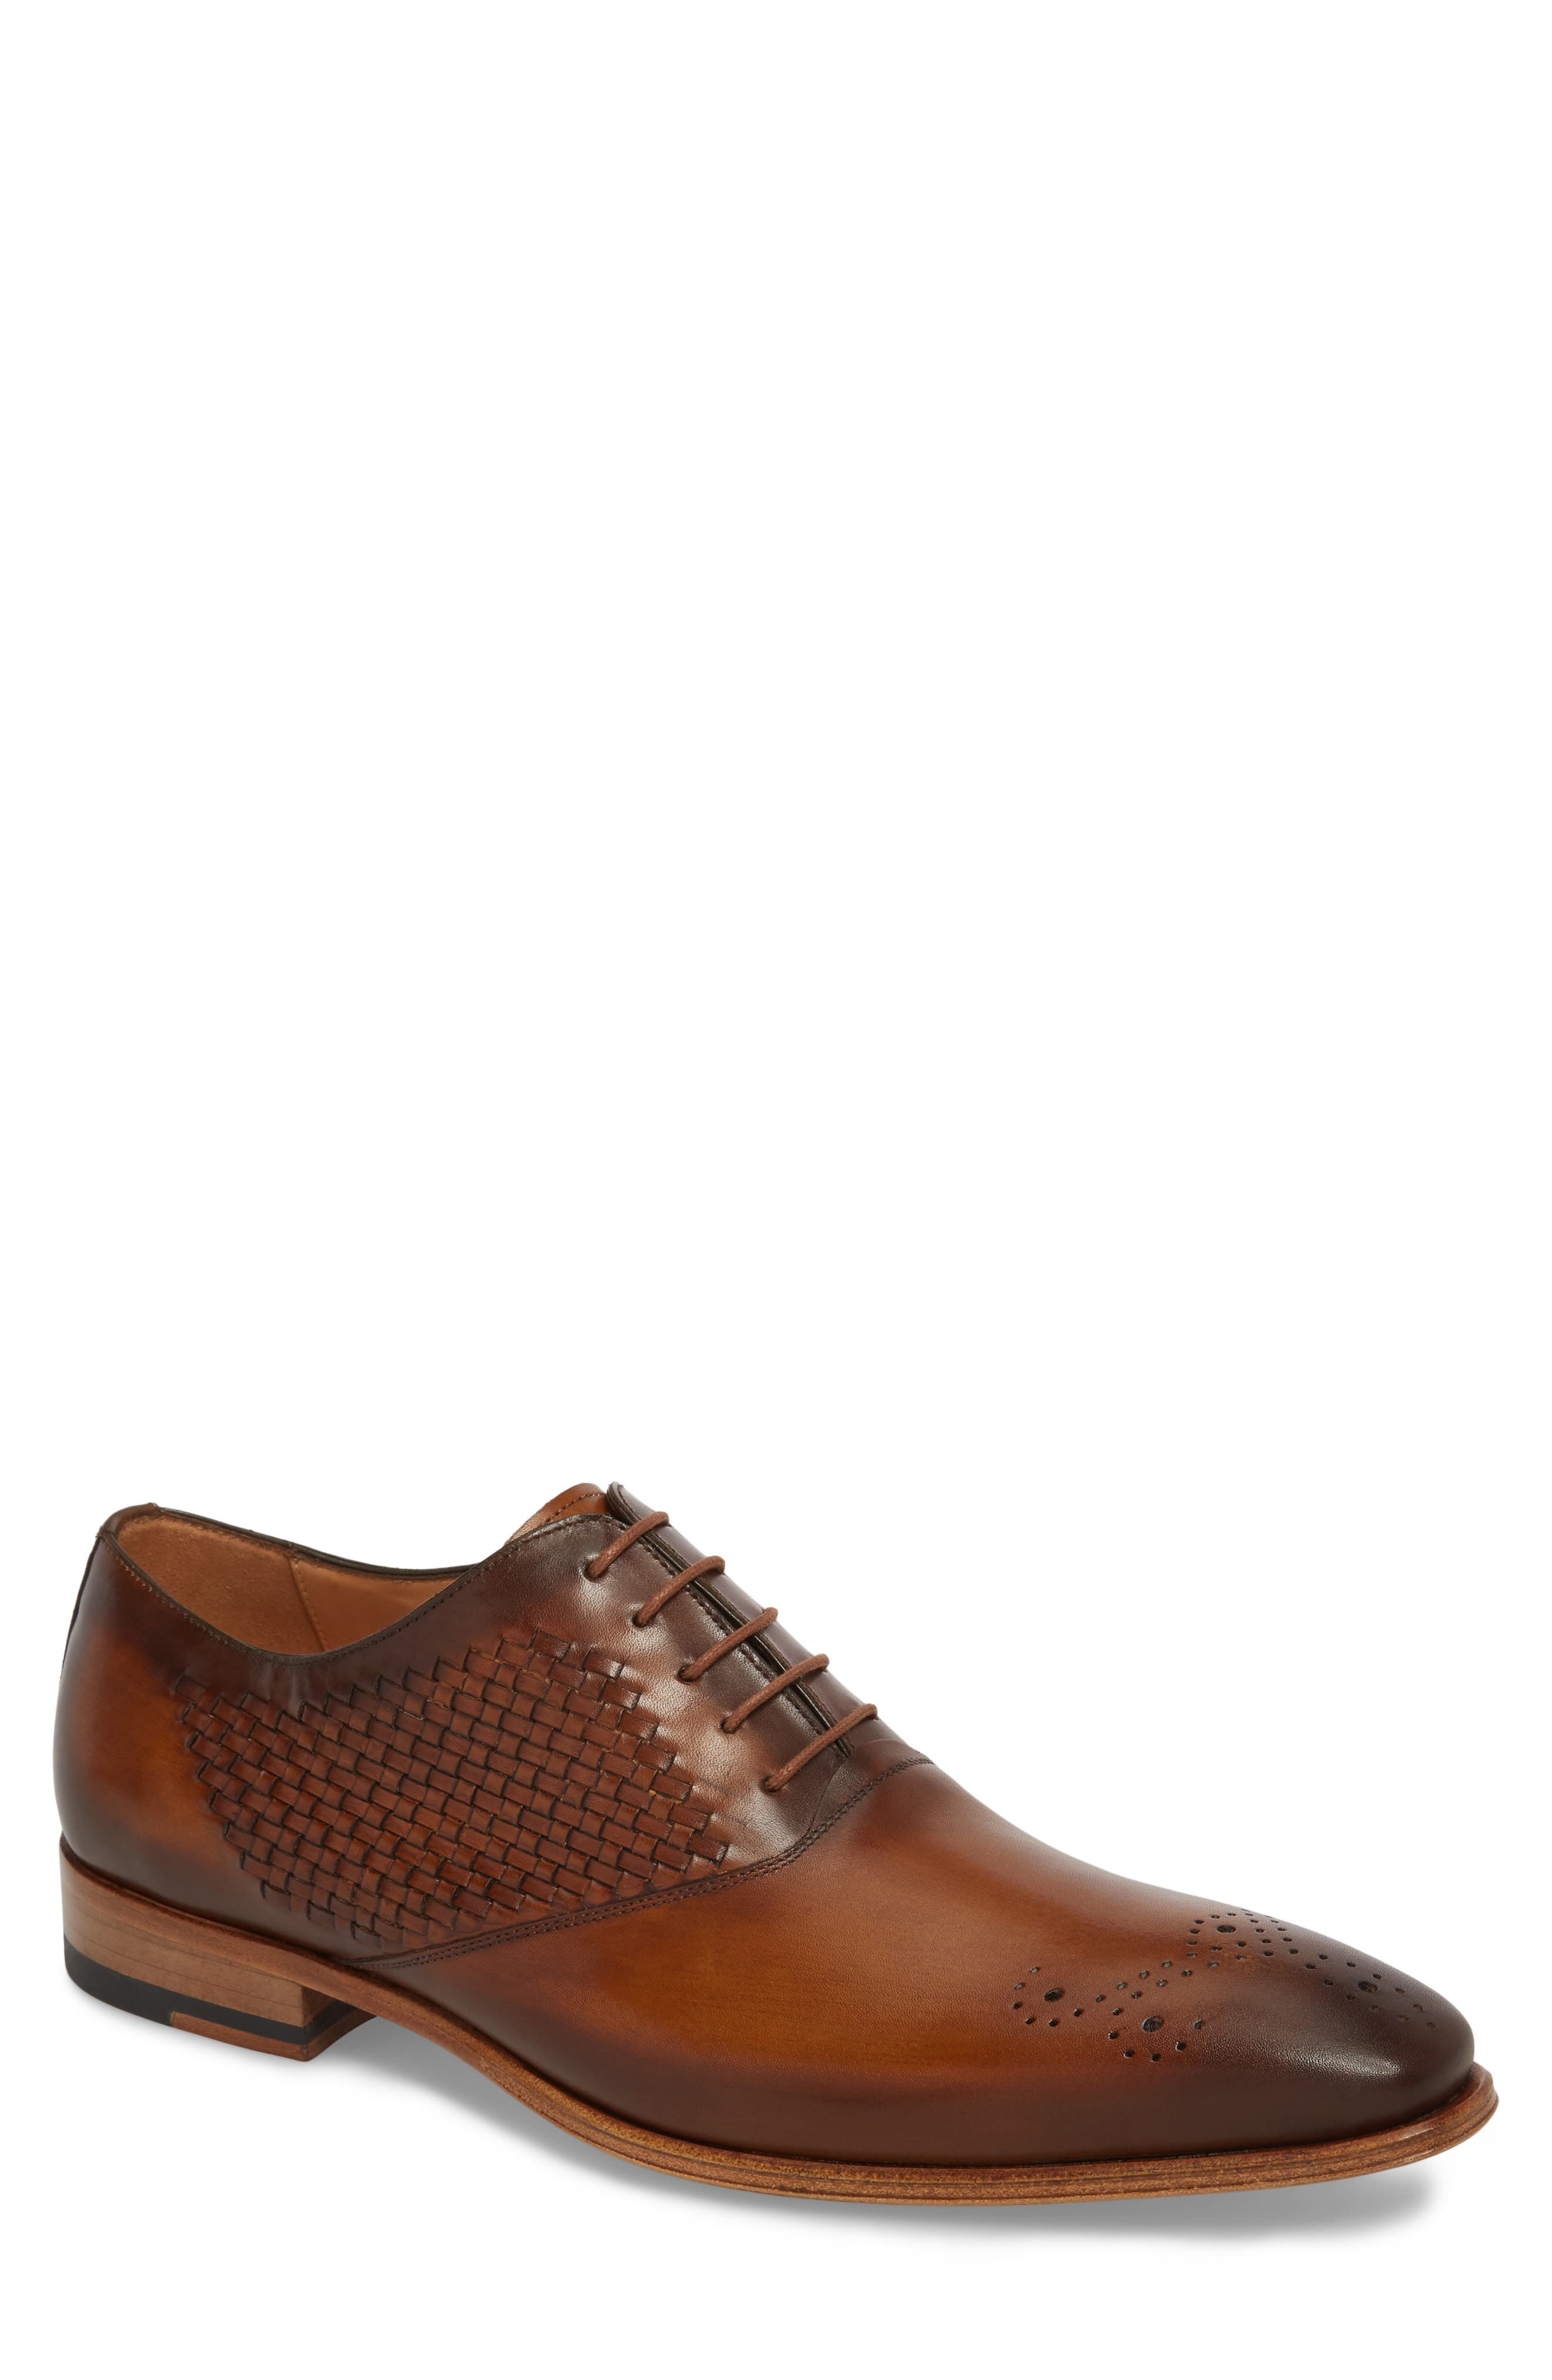 Juventa Woven Oxford,                         Main,                         color, HONEY LEATHER